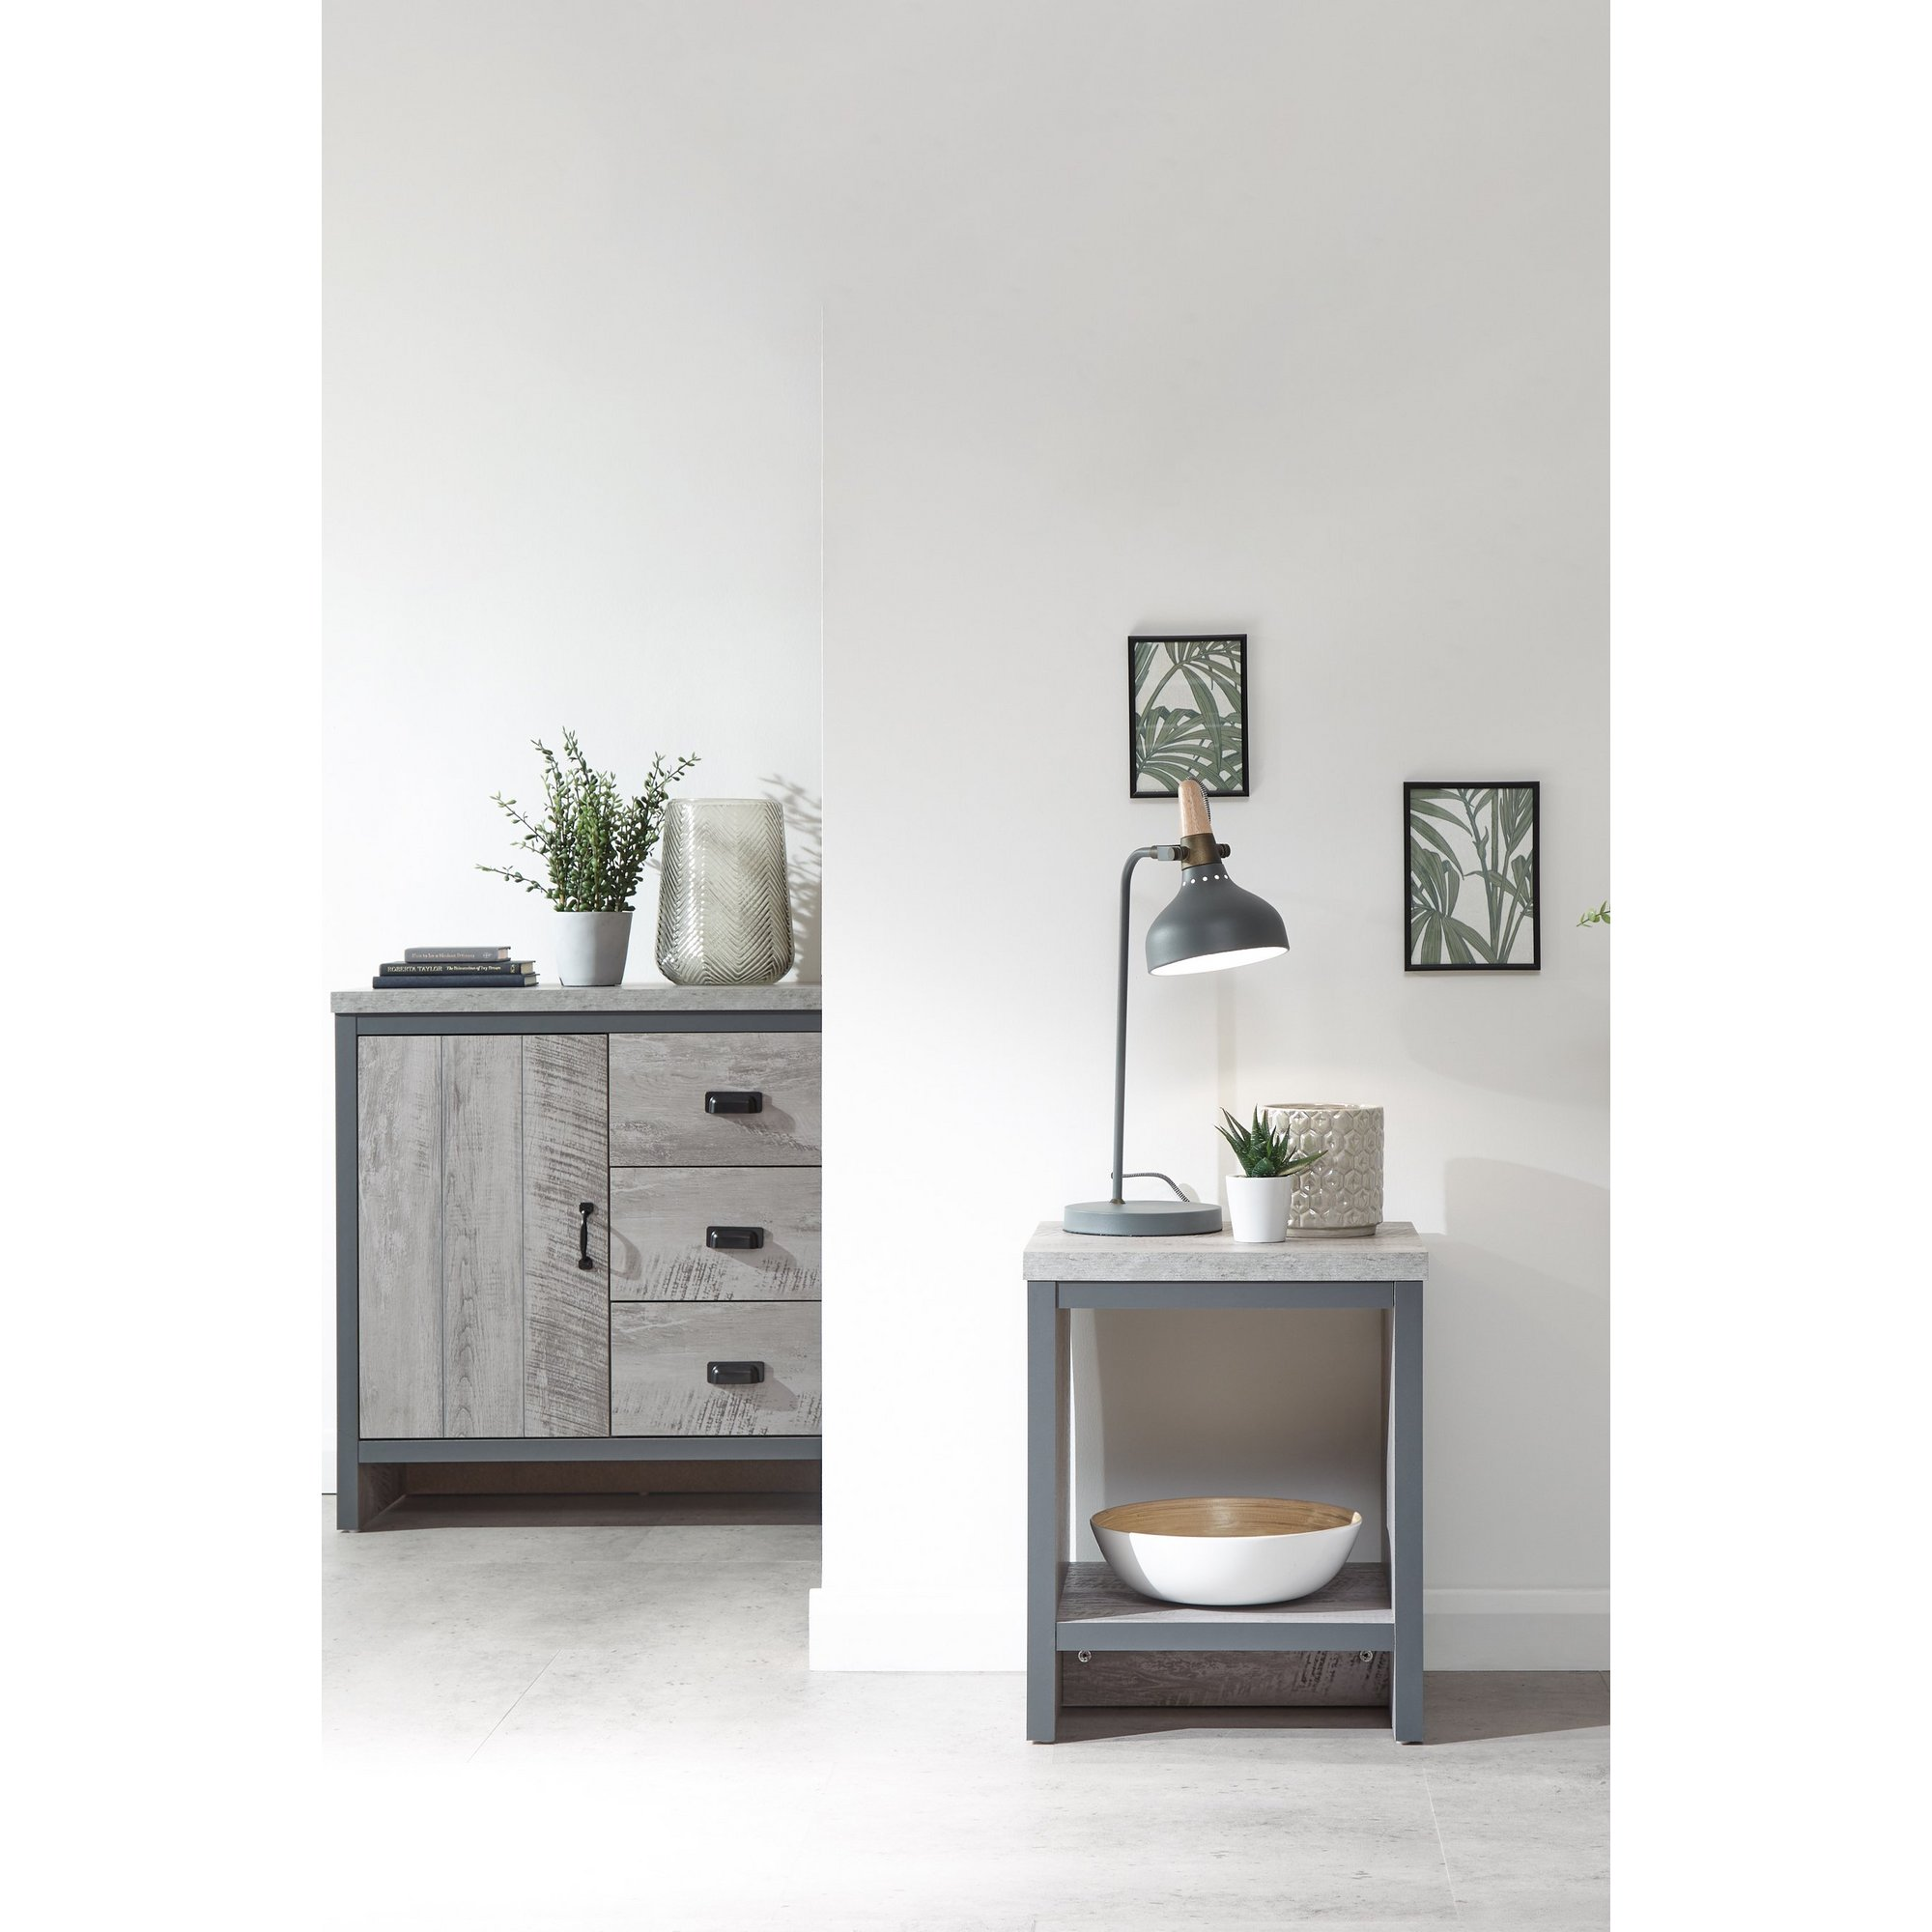 Image of Boston Simple Lamp Table